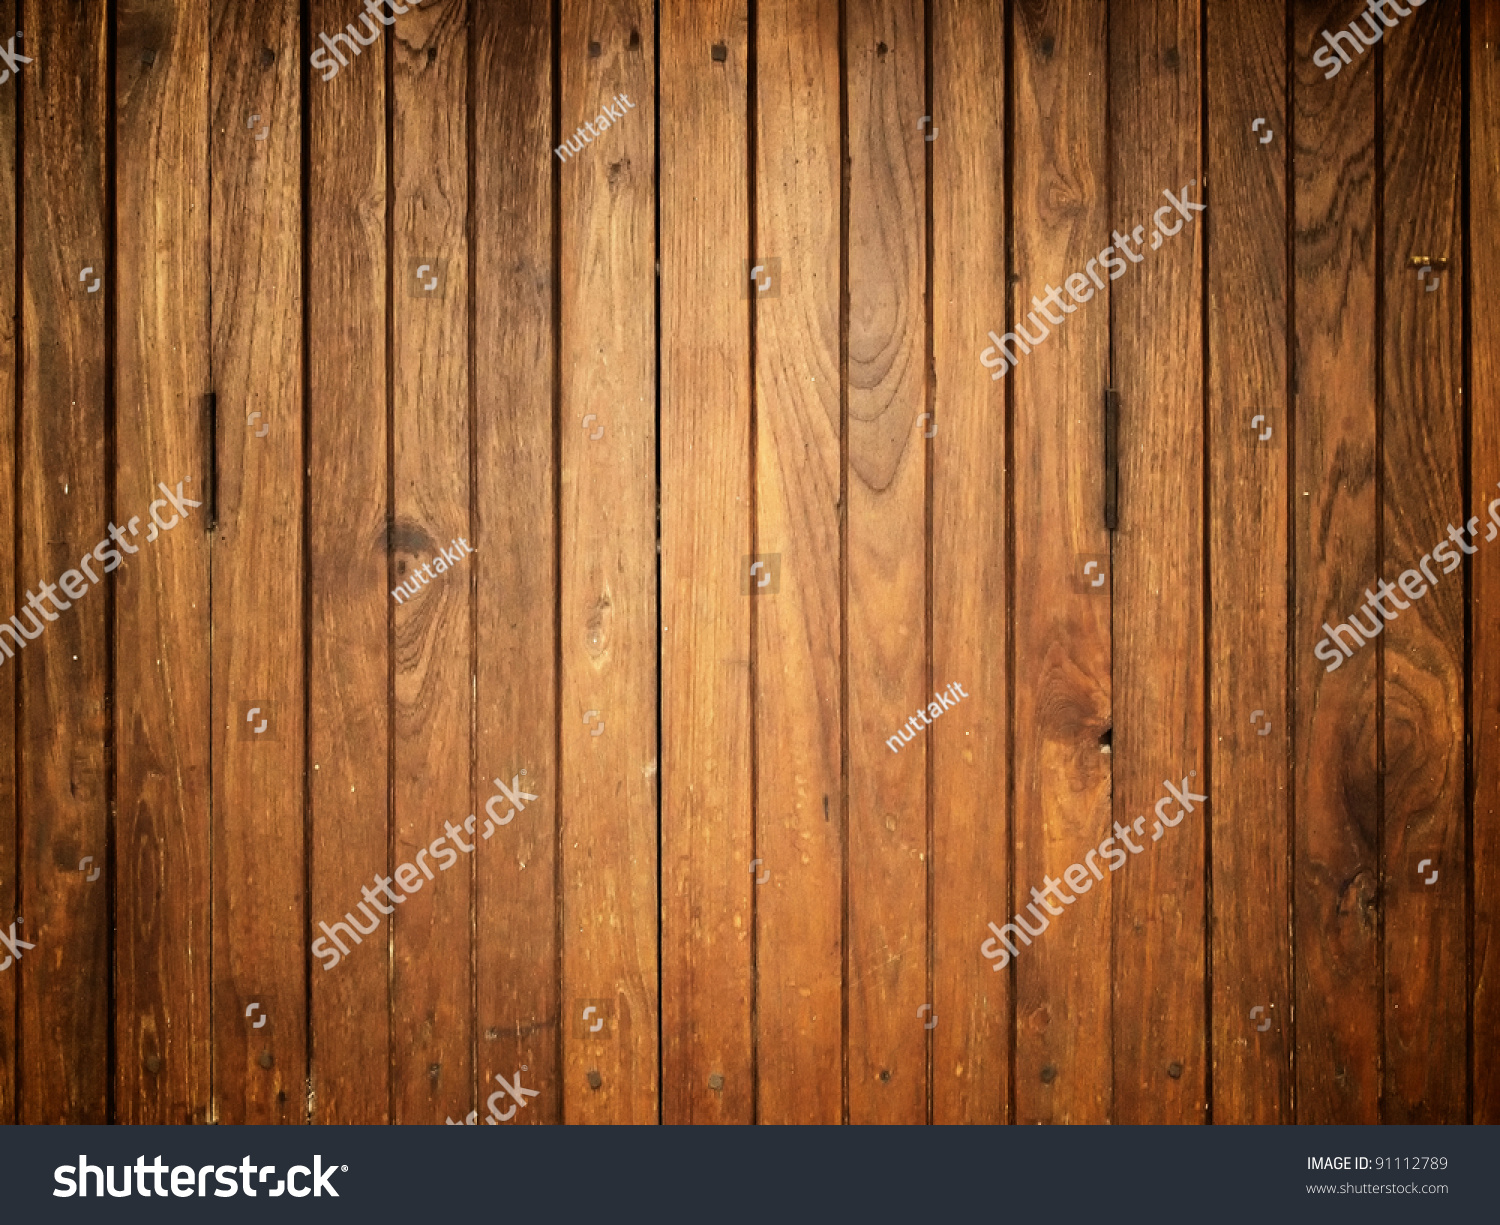 Old Wood Texture For Web Background Stock Photo 91112789 : Shutterstock